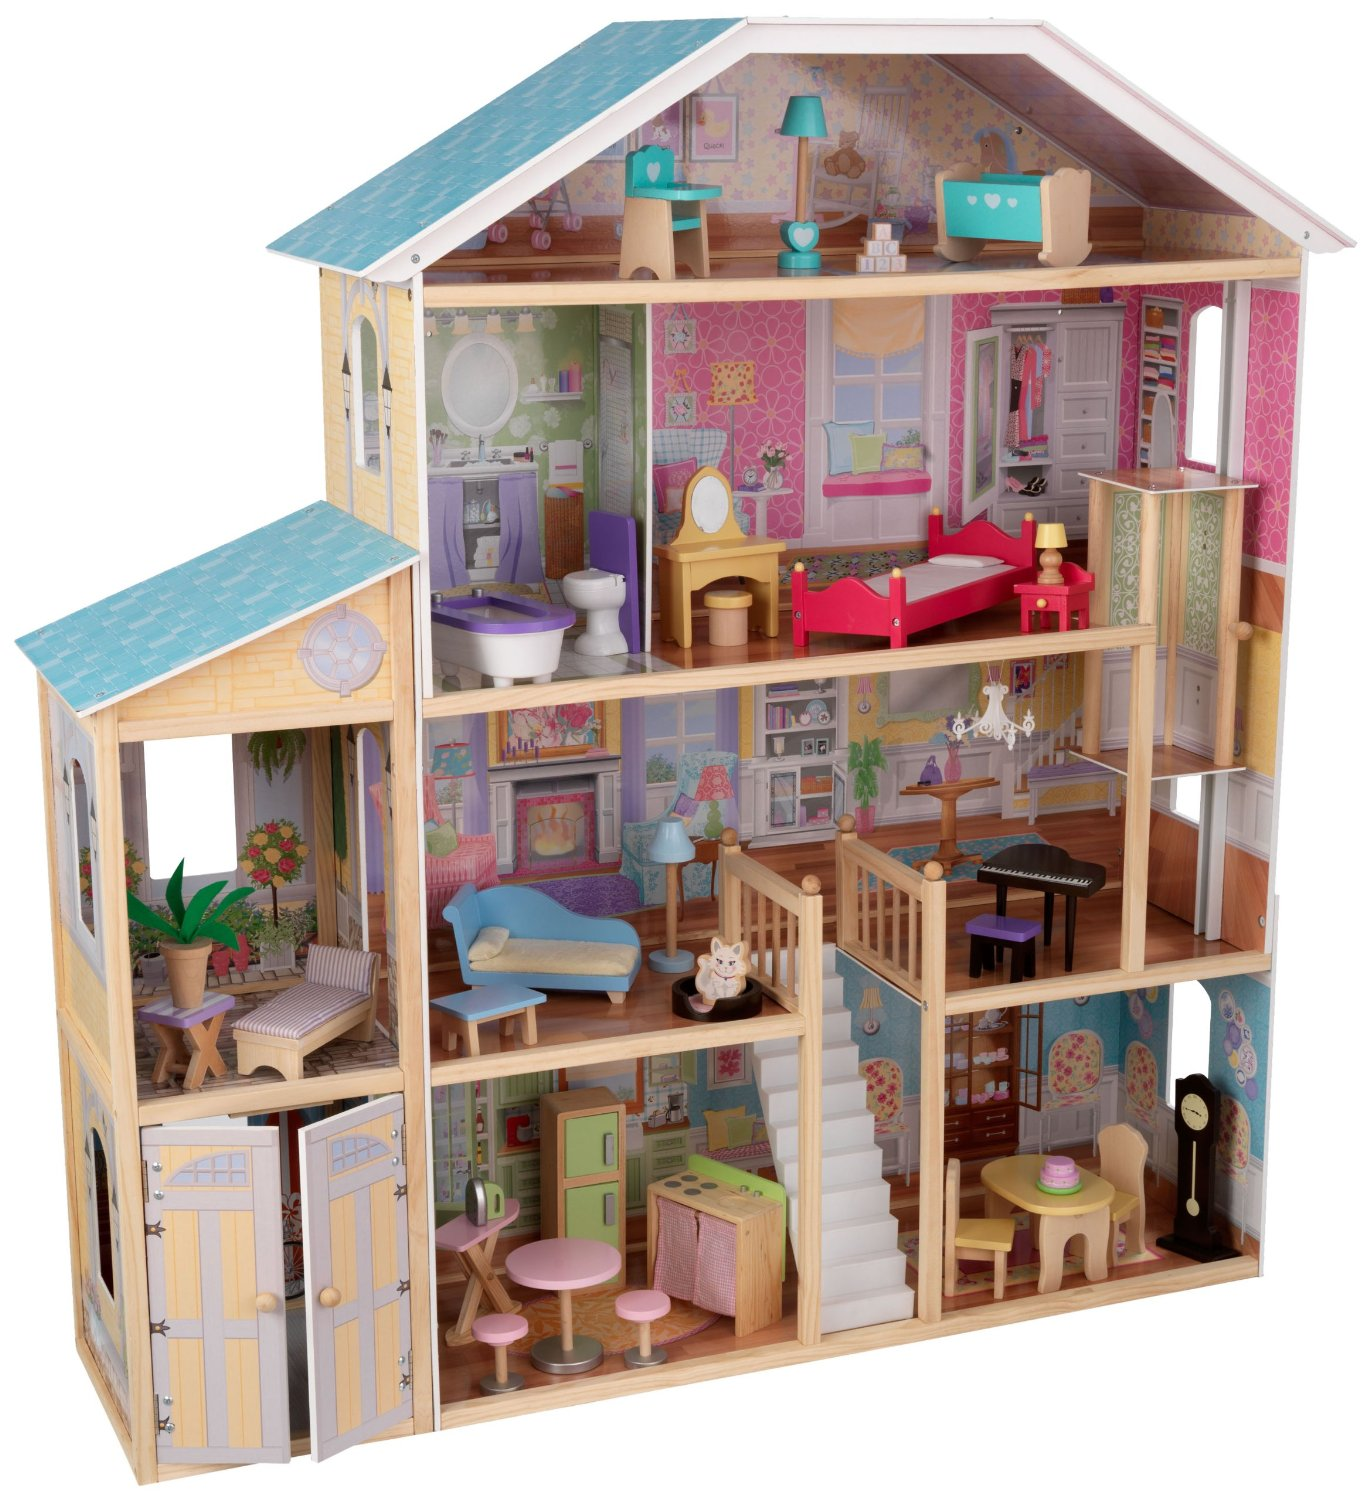 Best Dollhouse Deals Roundup (Gift Ideas For All Budgets ...